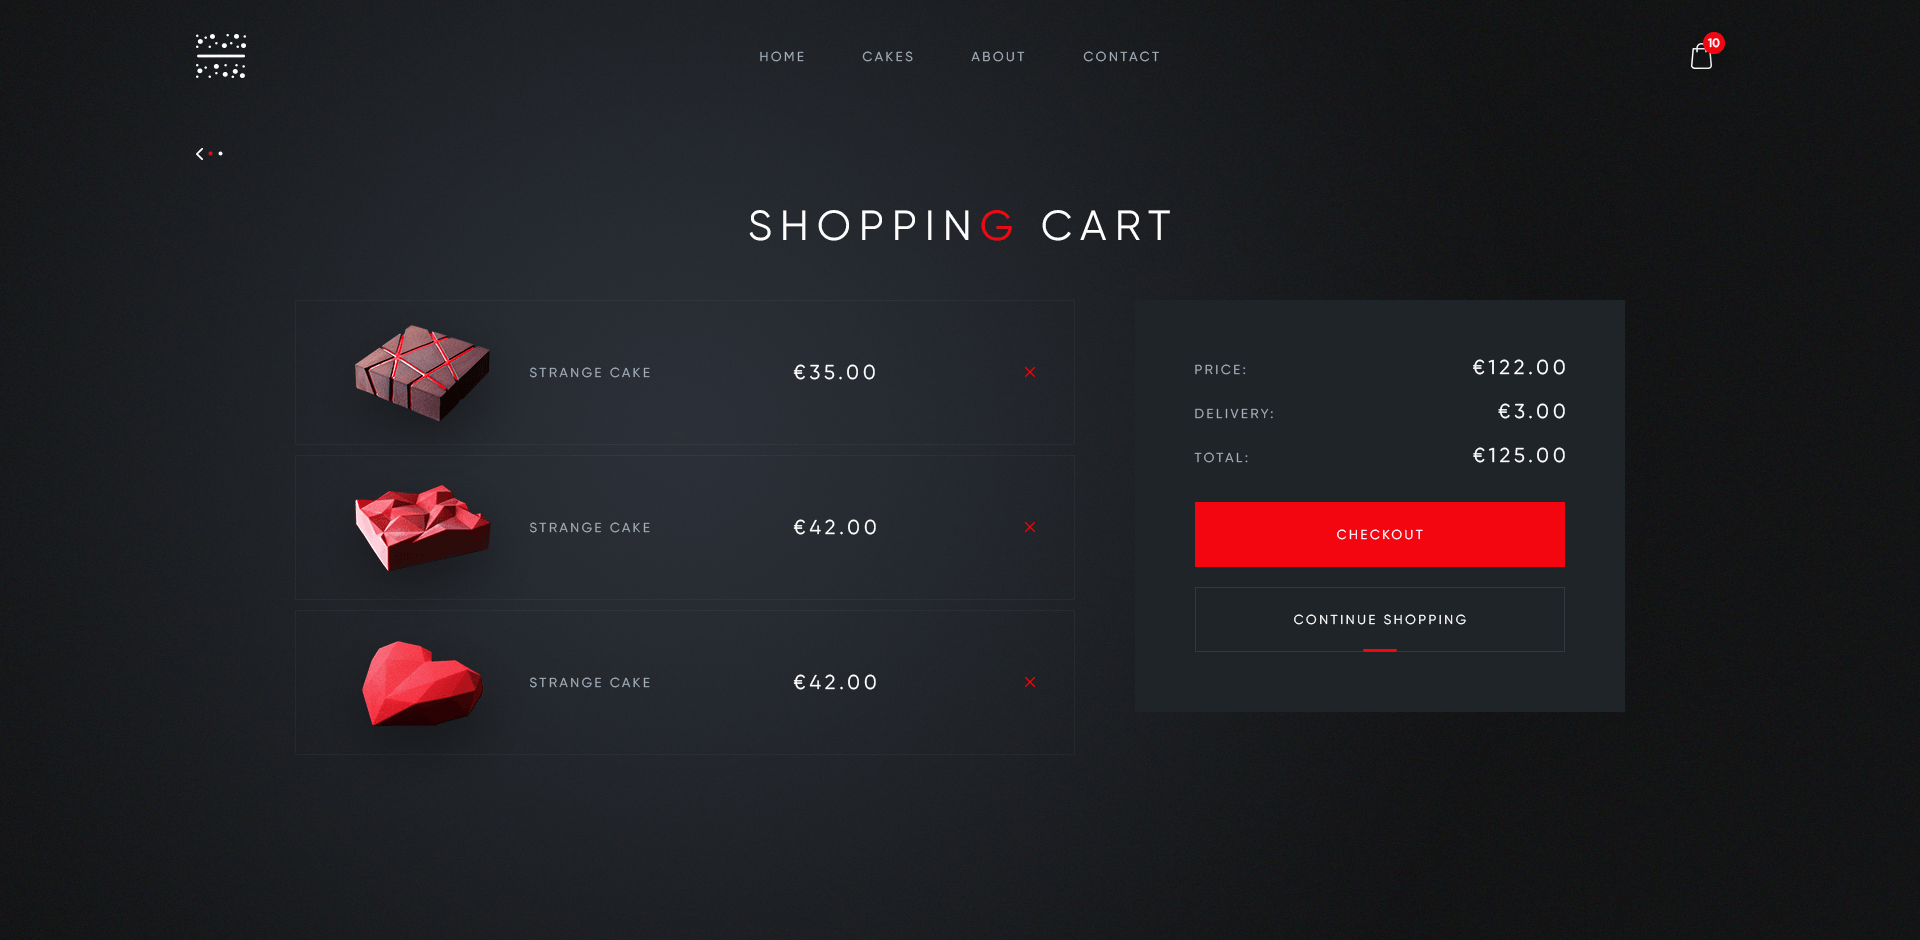 The_Pastry_05_Shopping_cart_1.0